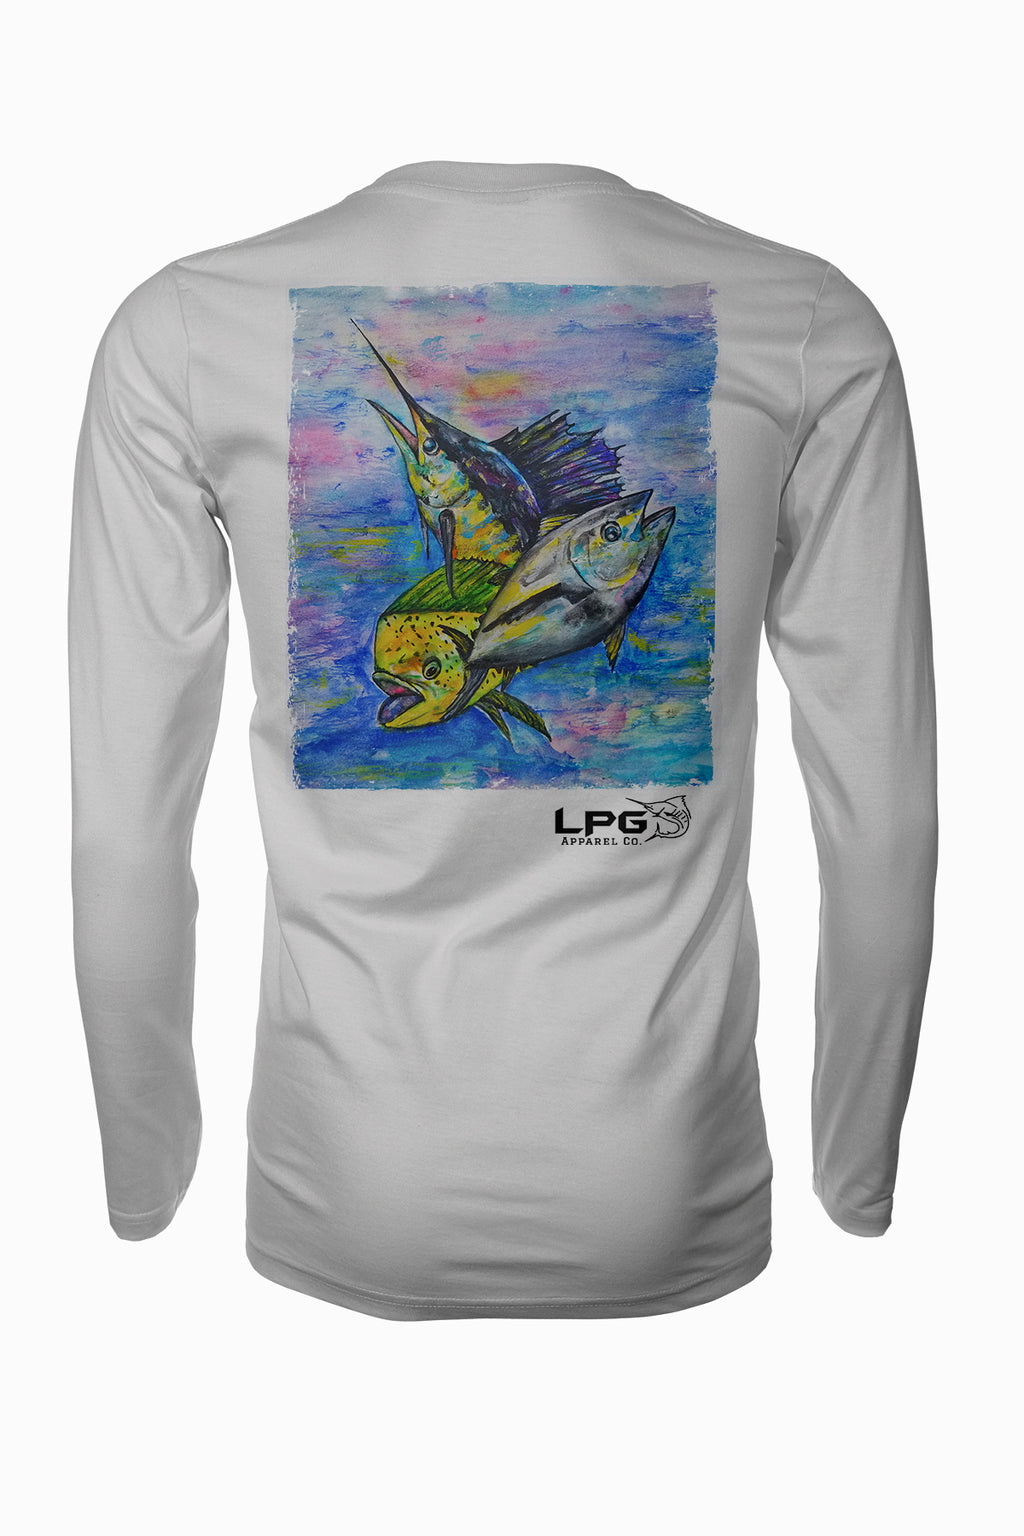 LPG Apparel Co. Mahi Tuna Marlin Mixed Bag Rash Guard LS Performance UPF 50 Unisex Shirt